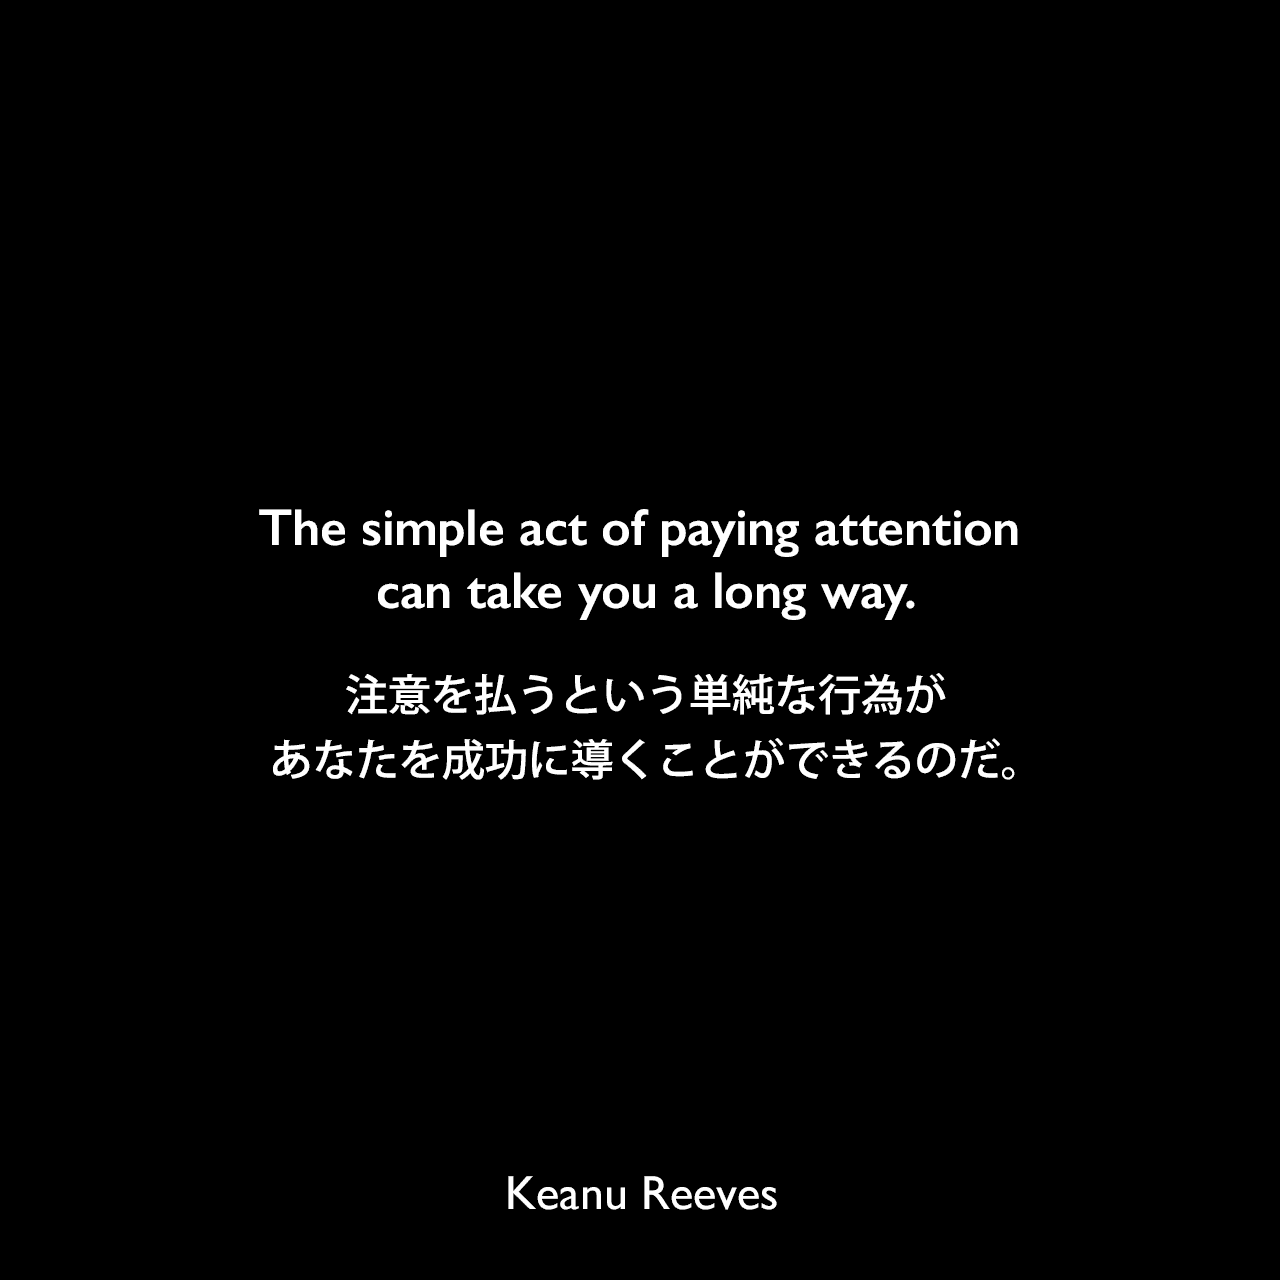 The simple act of paying attention can take you a long way.注意を払うという単純な行為が、あなたを成功に導くことができるのだ。Keanu Reeves